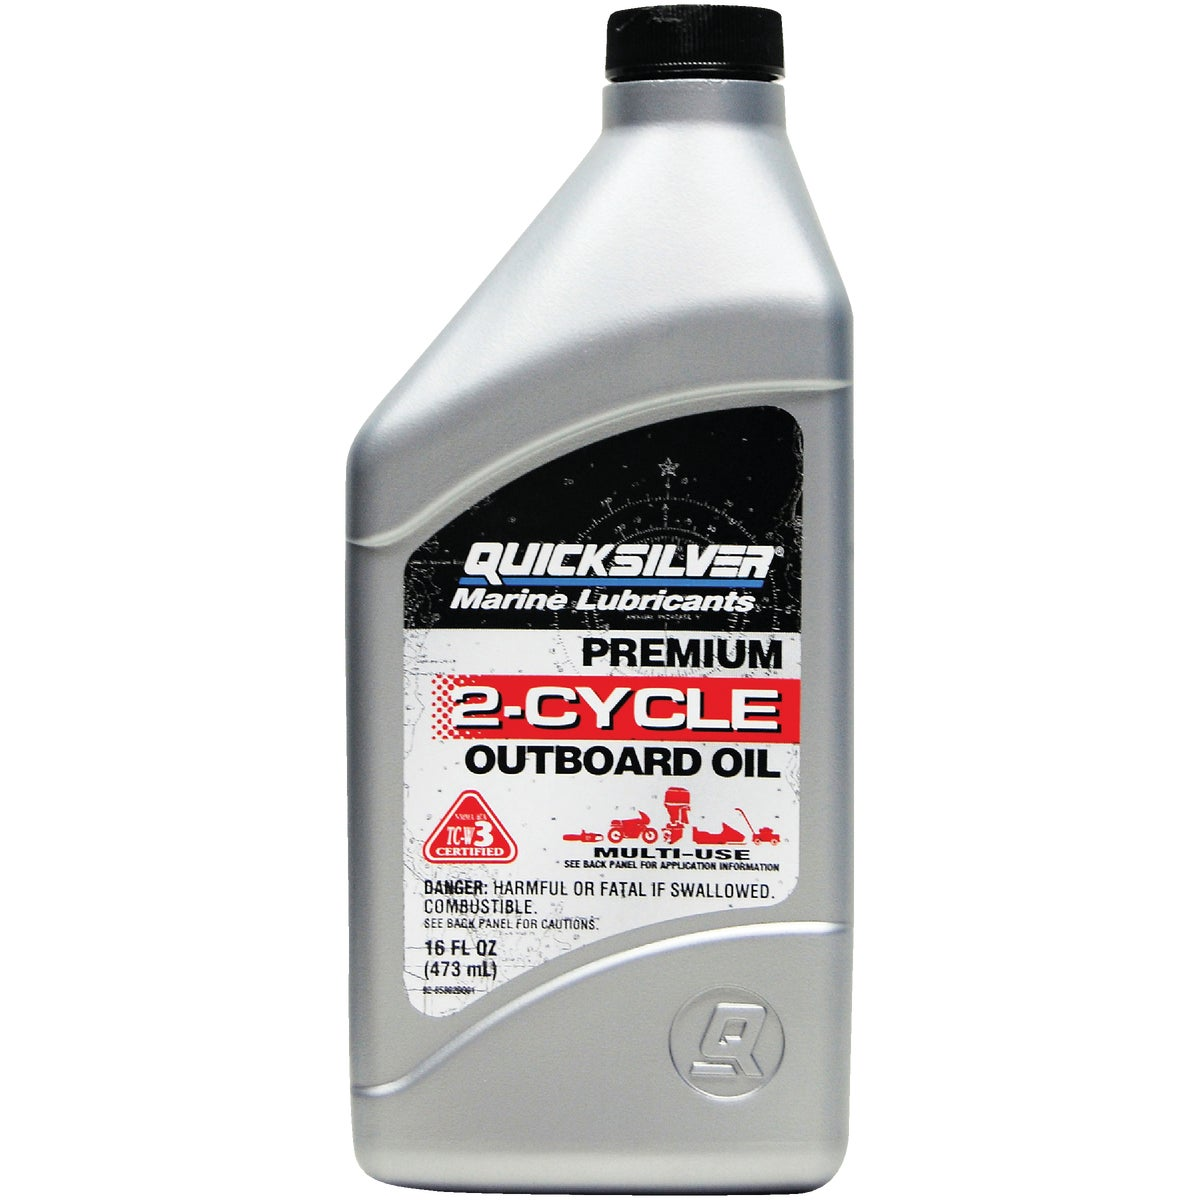 QUICKSILVER 2-CYCLE OIL - MERC92858020Q01 by Twinco Romax